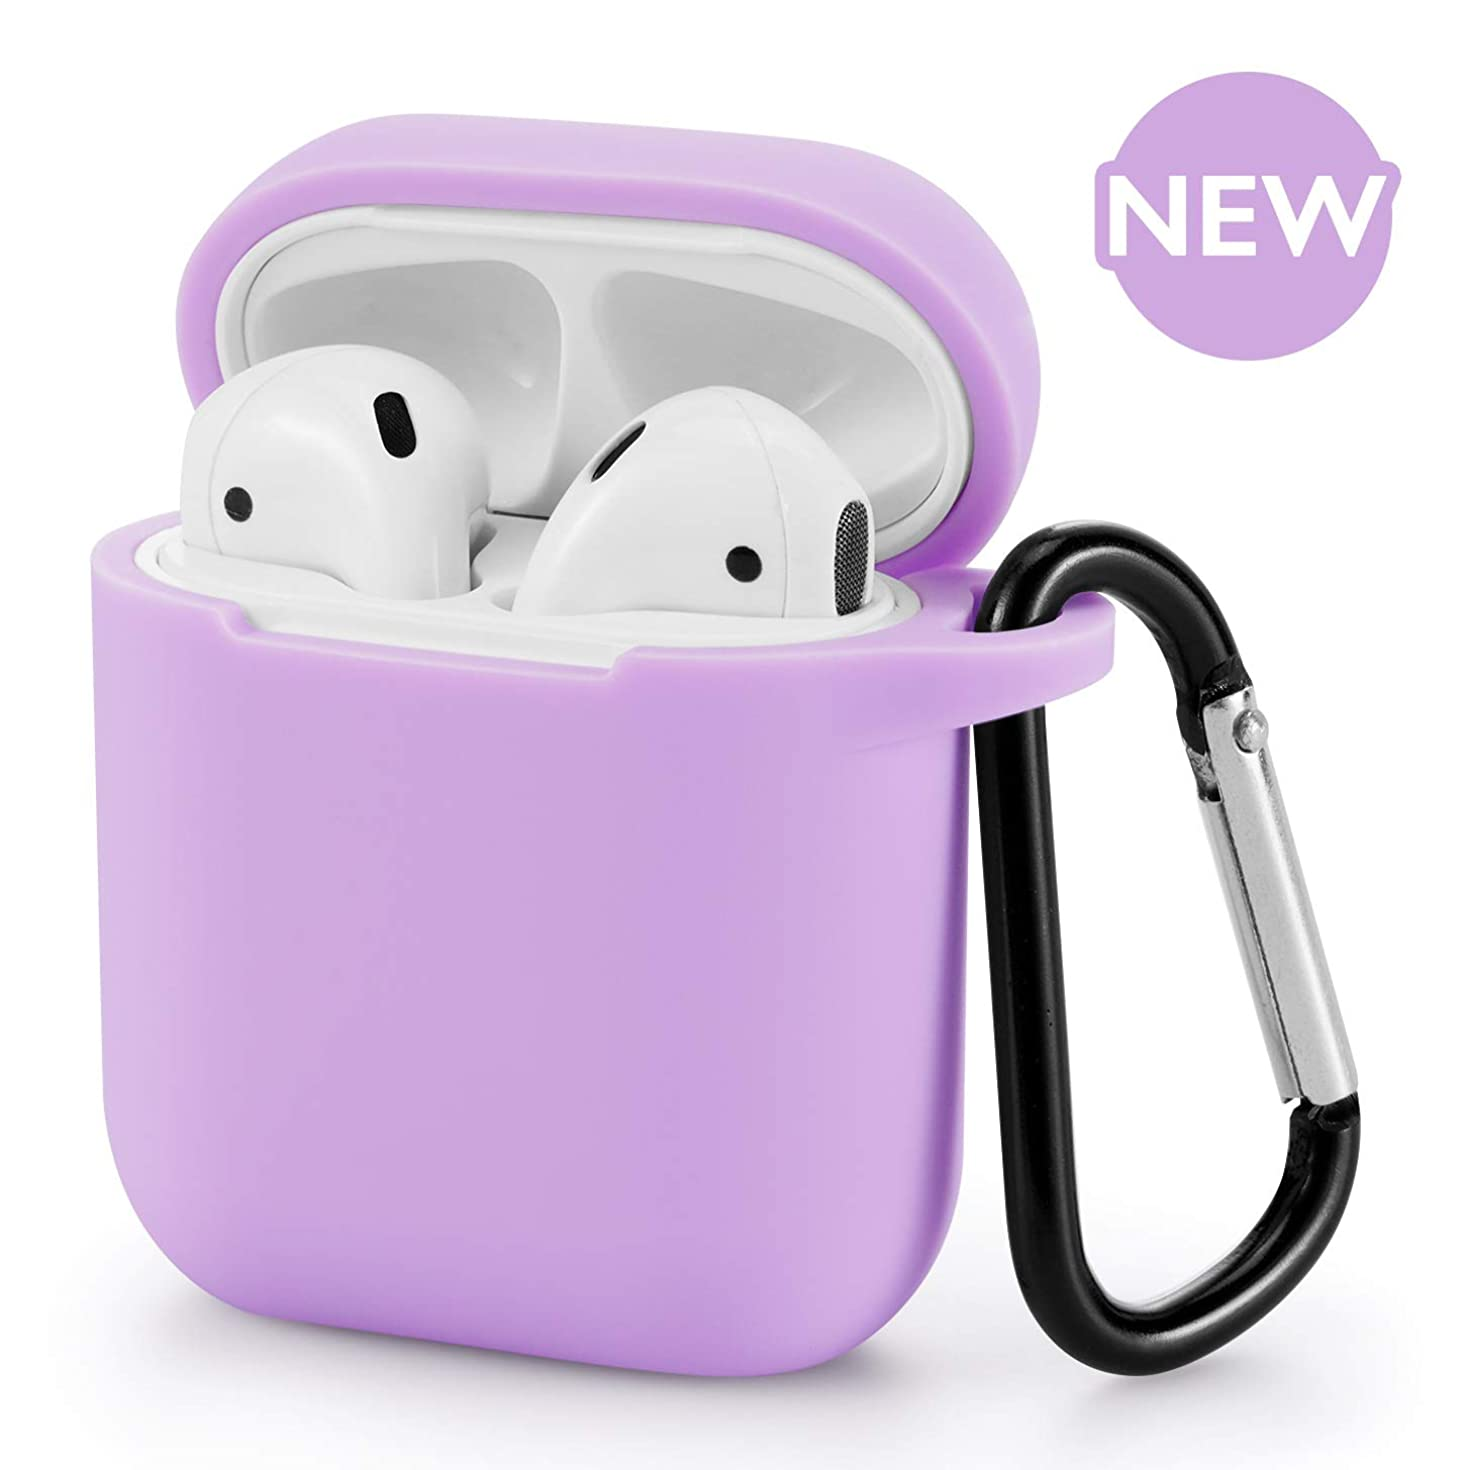 AirPods Case - BLUEWIND AirPod Case Silicone Cover 2019 Newest 360° Protective Cases Compatiable with Apple AirPods 2nd/1st (Light Purple)